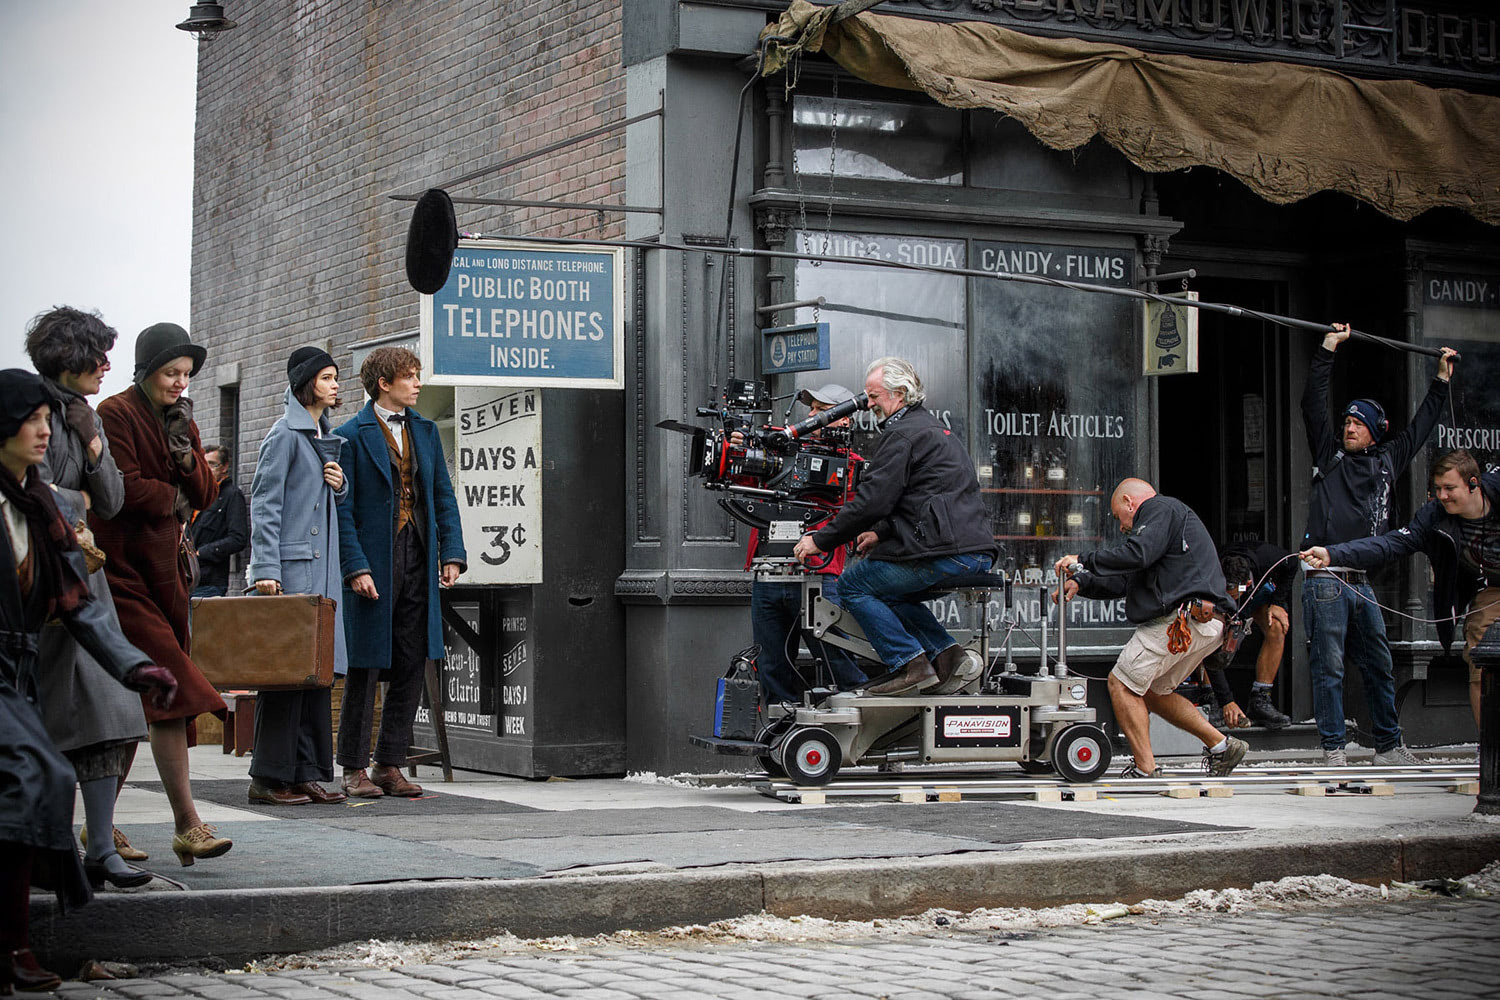 Eddie Redmayne and Katherine Waterston film a street scene